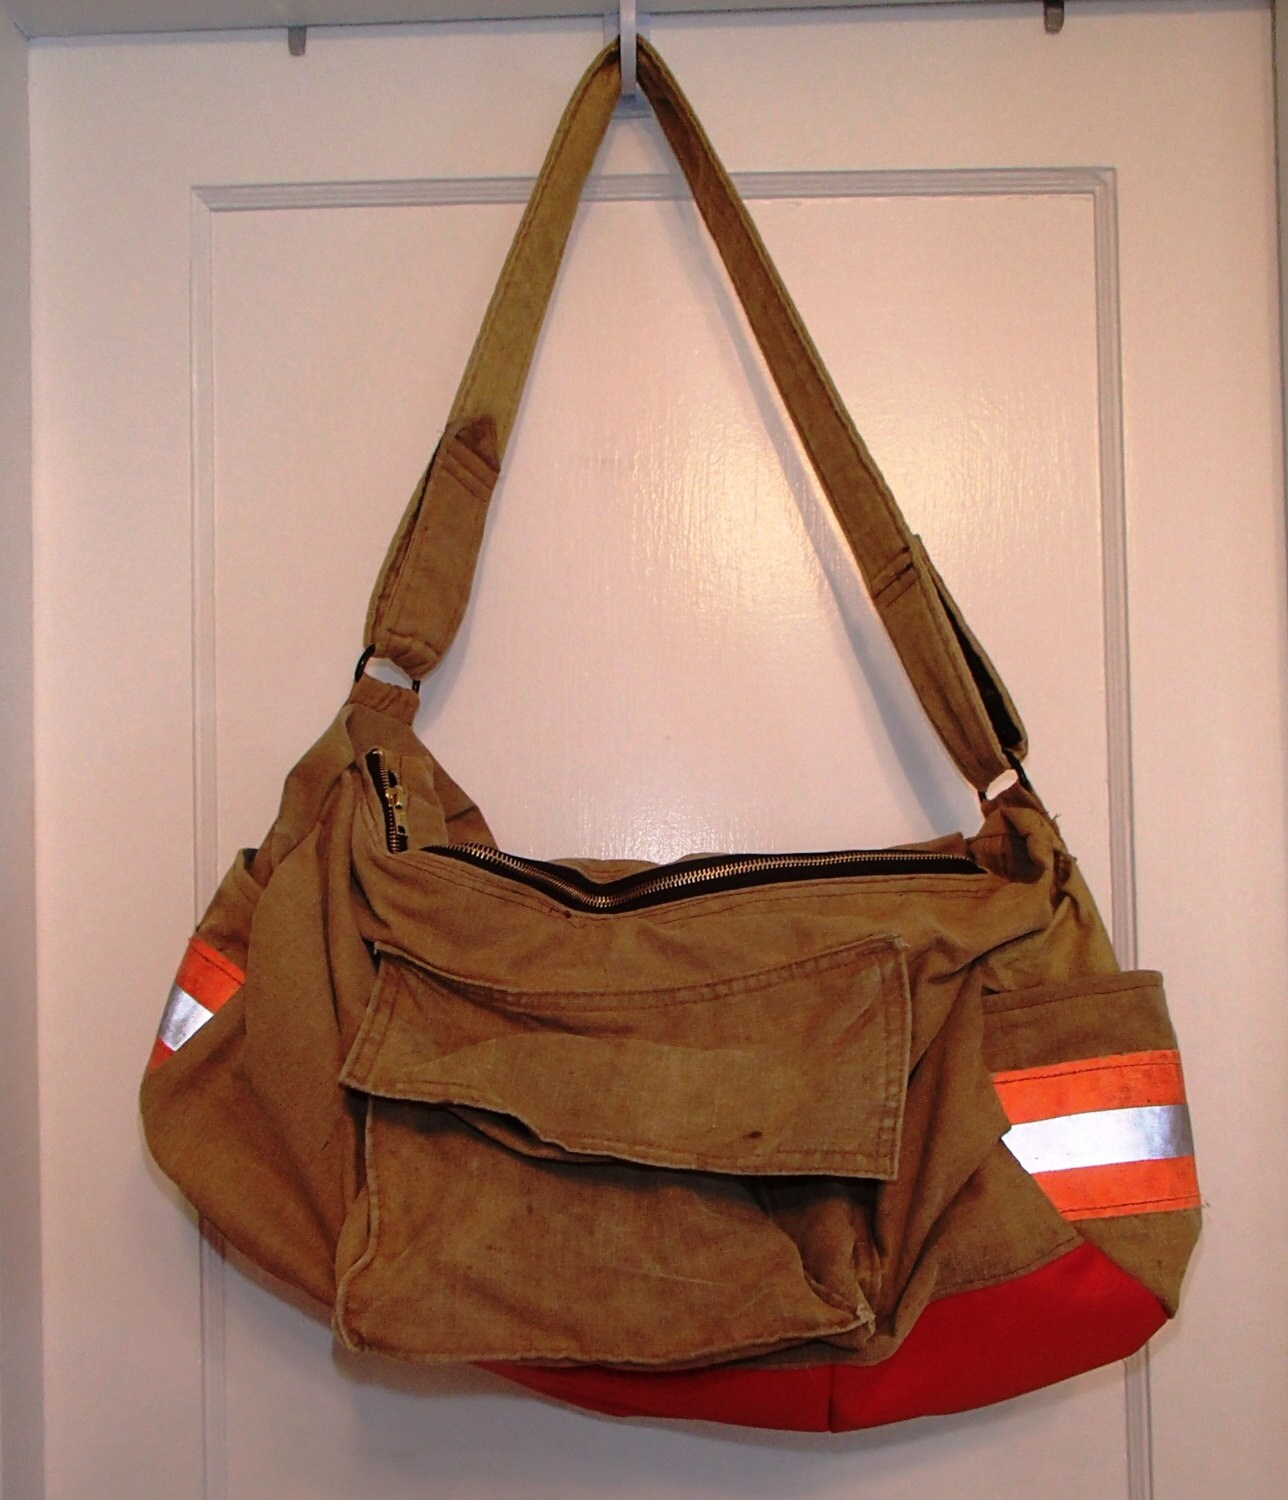 Recycled bunker gear bags - Firefighter Turnout Gear Duffle Bag